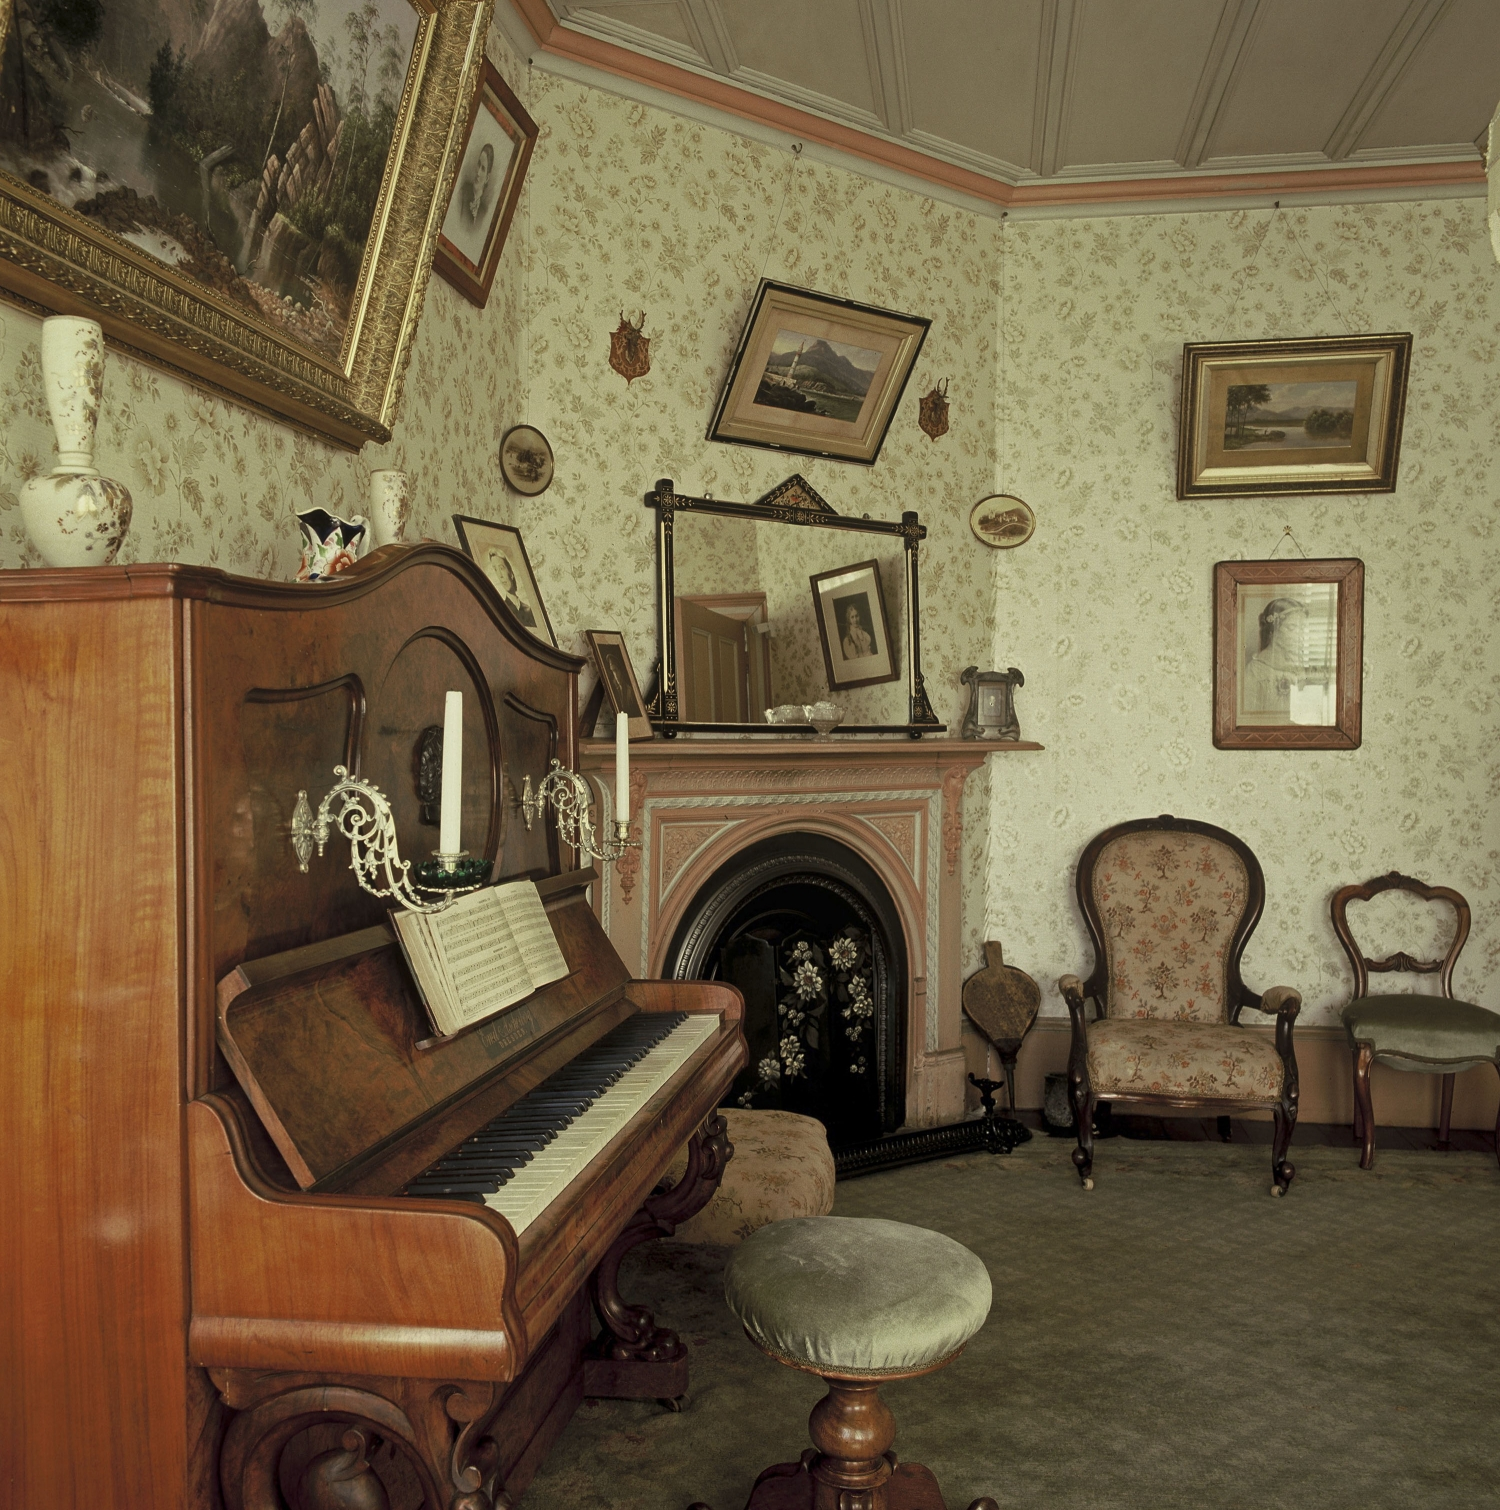 Colour photo of room with piano, fireplace, chairs, ornaments and frame pictures on wallpapered walls.